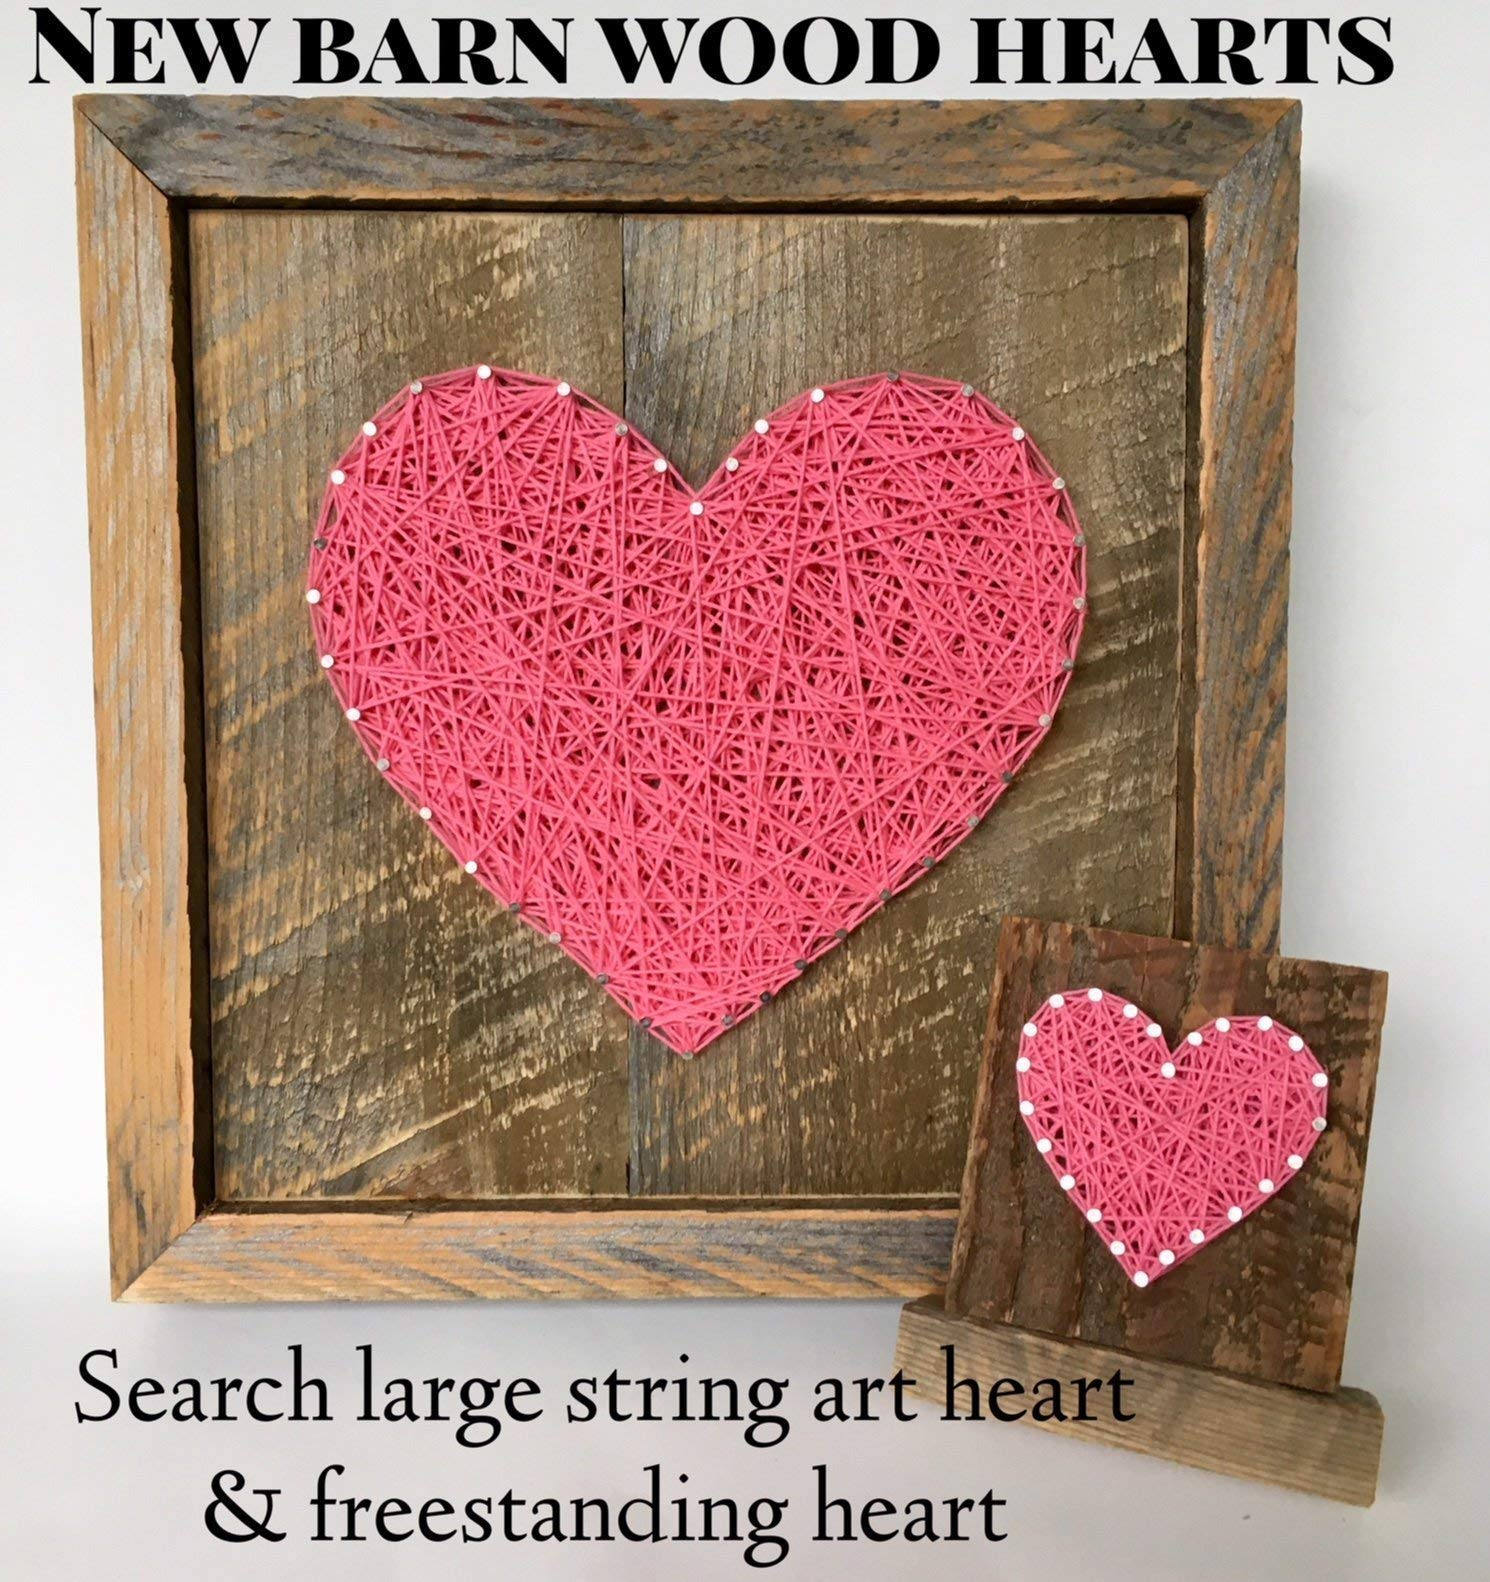 Sweet & small freestanding wooden pink string art heart sign. Perfect for Mother's Day, home accents, Wedding favors, Anniversary gifts, nursery decoration and just because gifts by Nail it Art. by Nail it Art (Image #7)